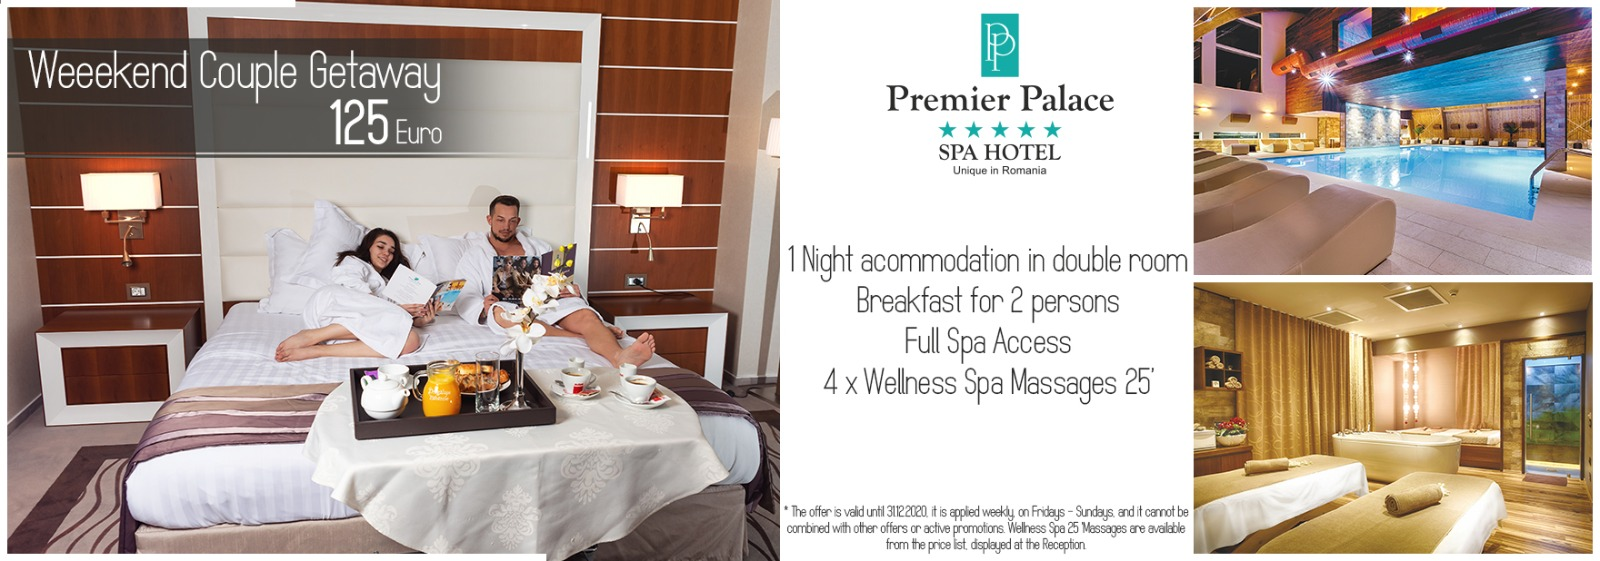 Weekend Couple Getaway 2020 Premier Palace Spa Hotel Couple Offer